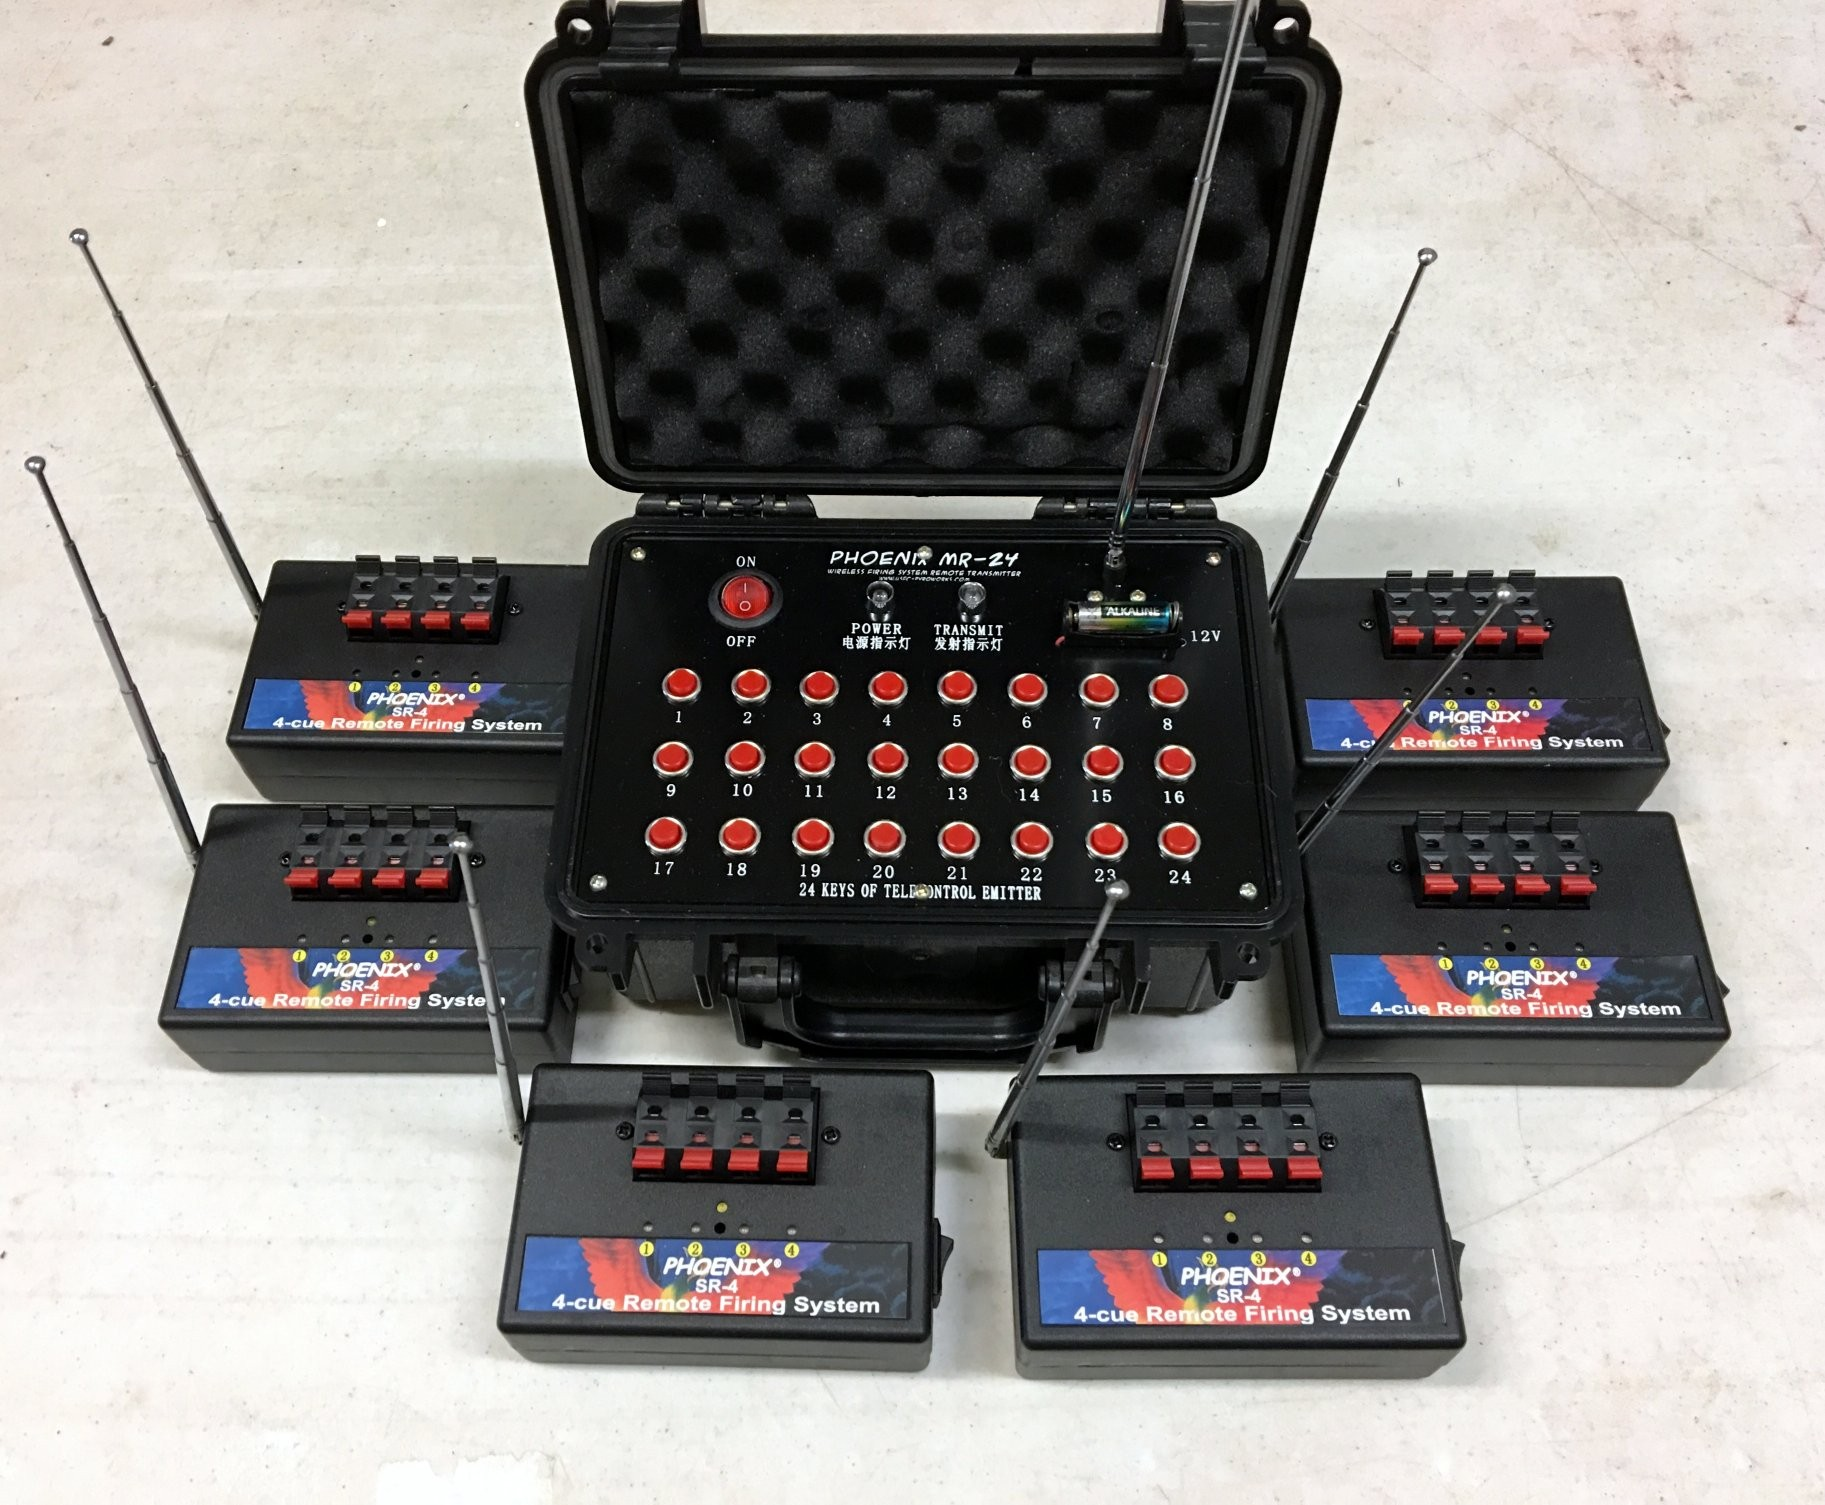 SR-24-4 Distributed System with 4-cue Receivers - 6 Zones